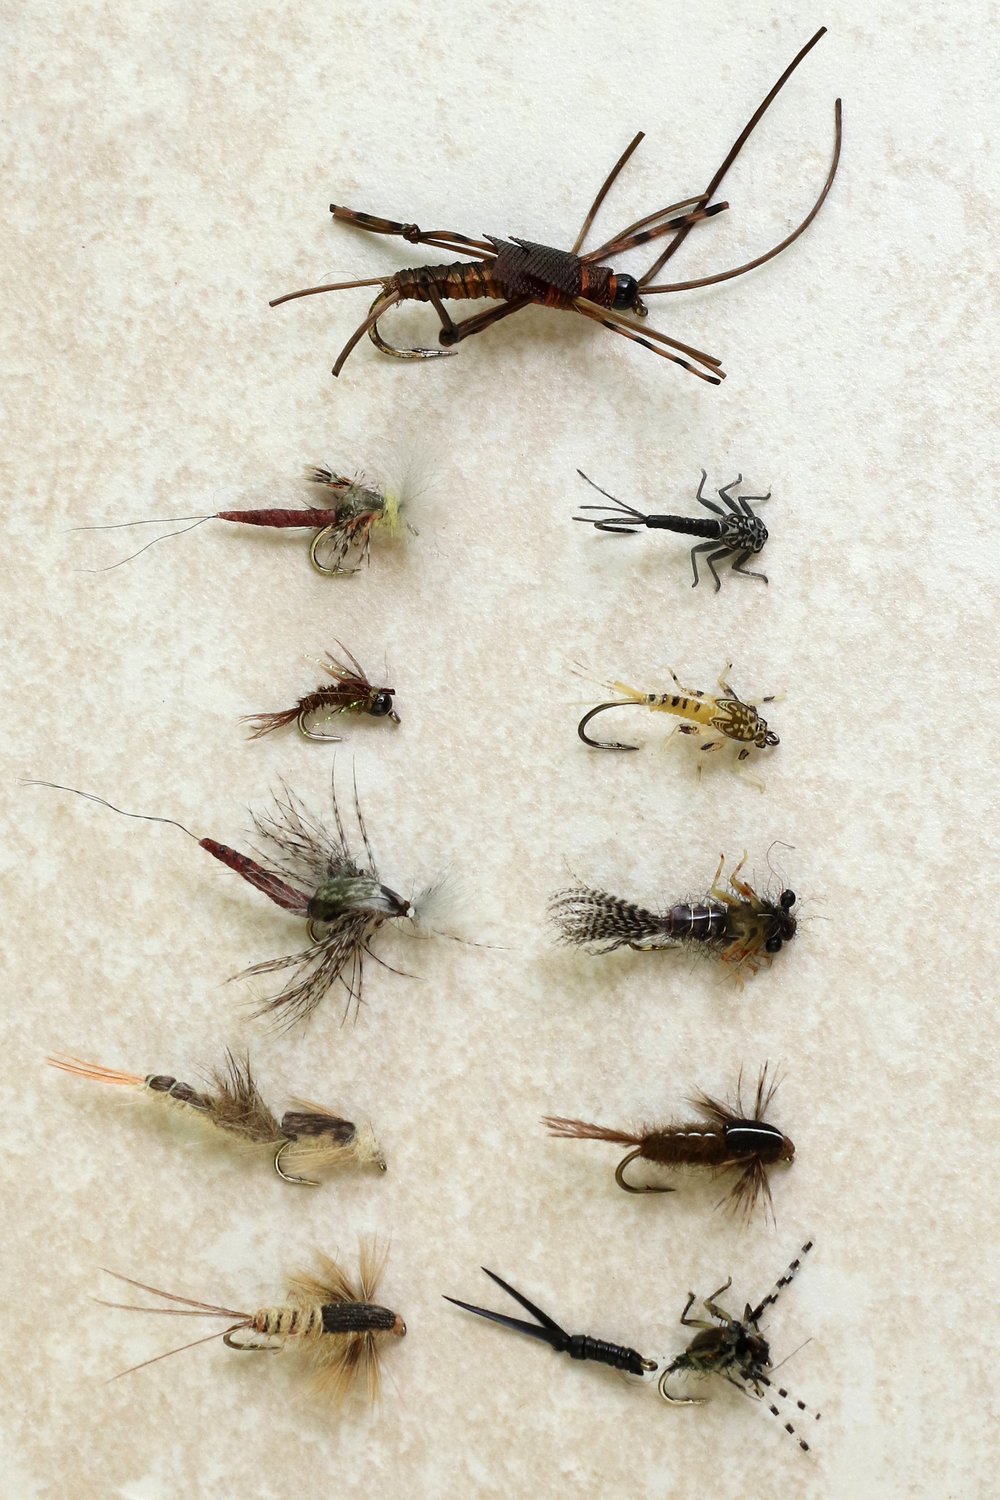 Nymphs and Emergers